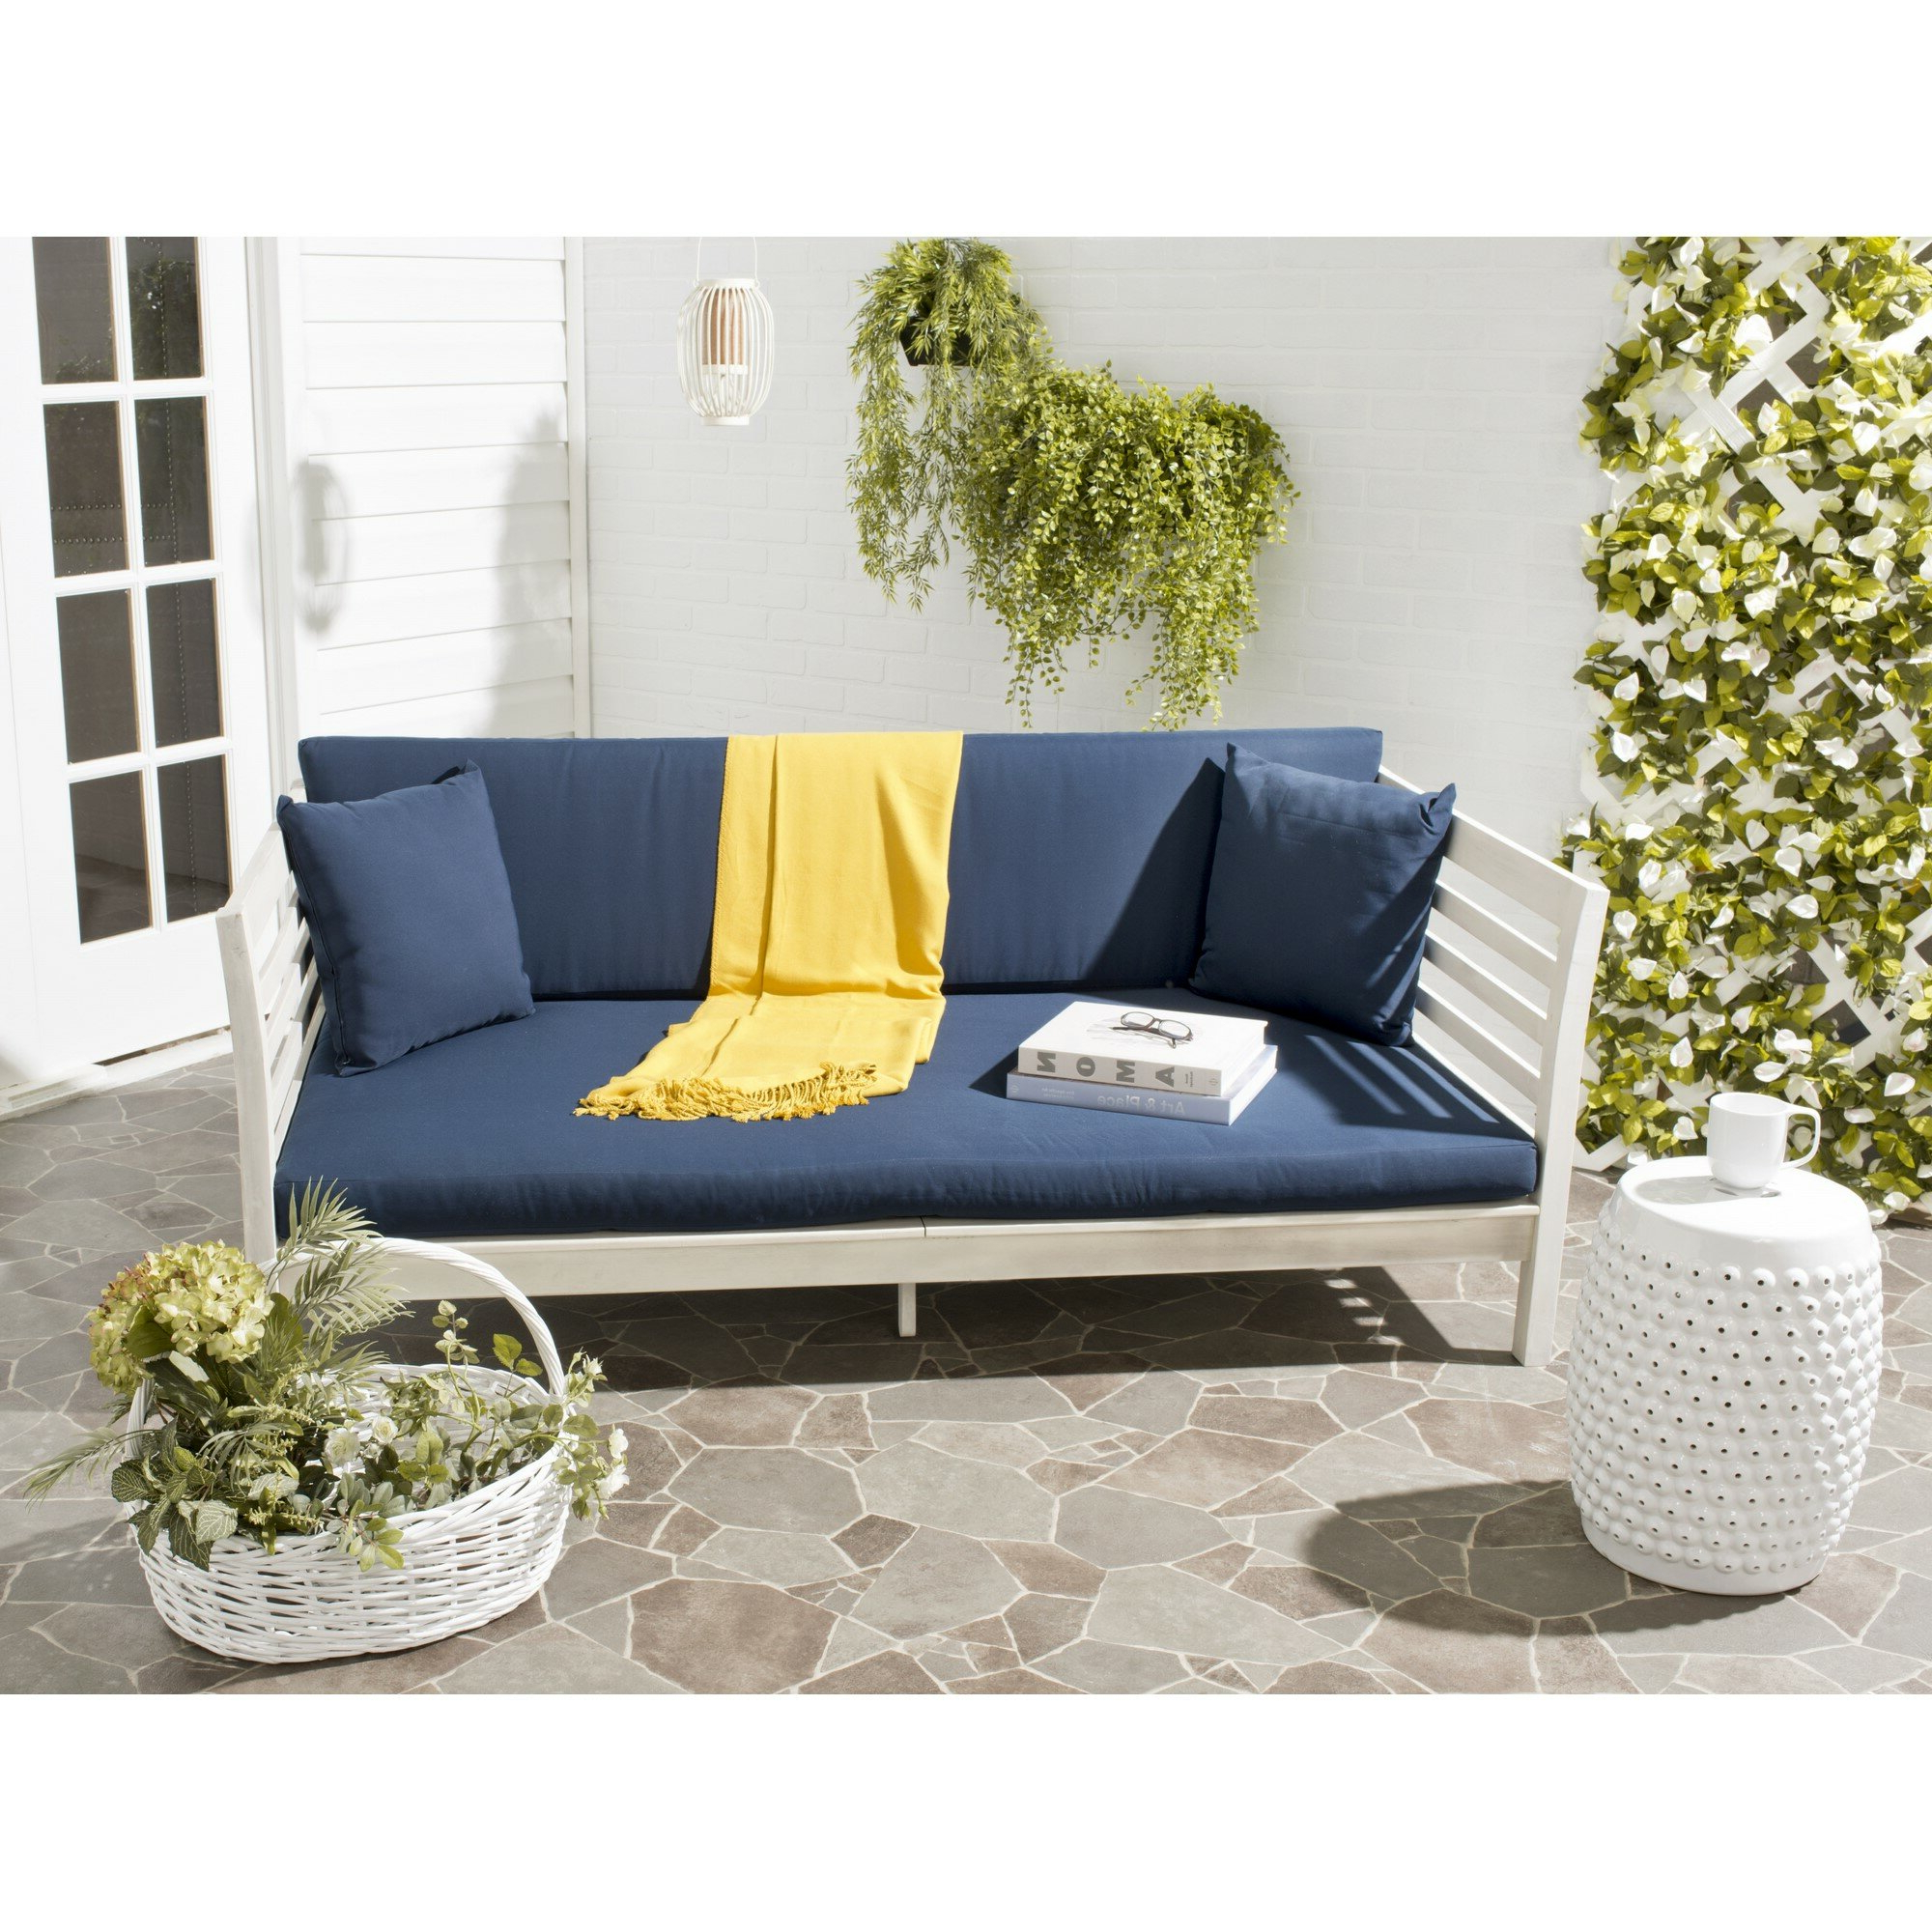 Preferred Bodine Patio Daybeds With Cushions With Regard To Bodine Patio Daybed With Cushions (View 4 of 25)